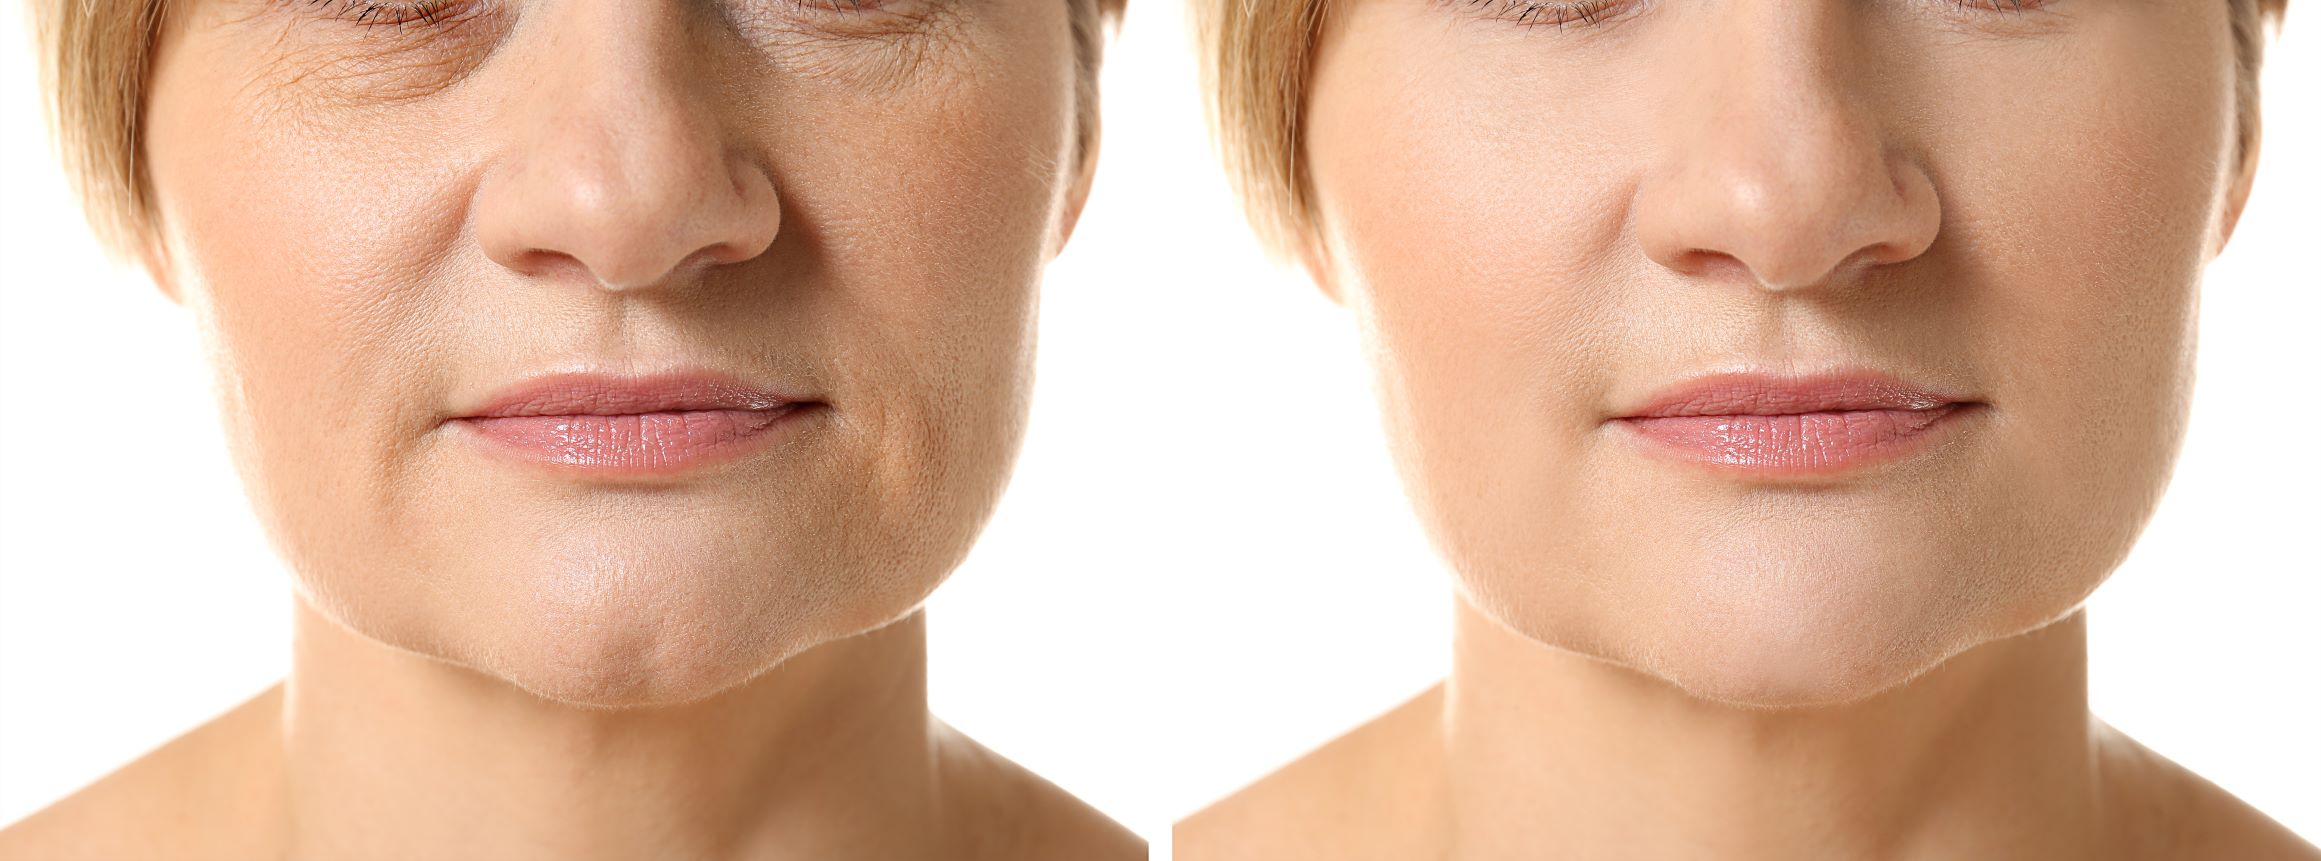 Mesotherapy vs. Microneedling